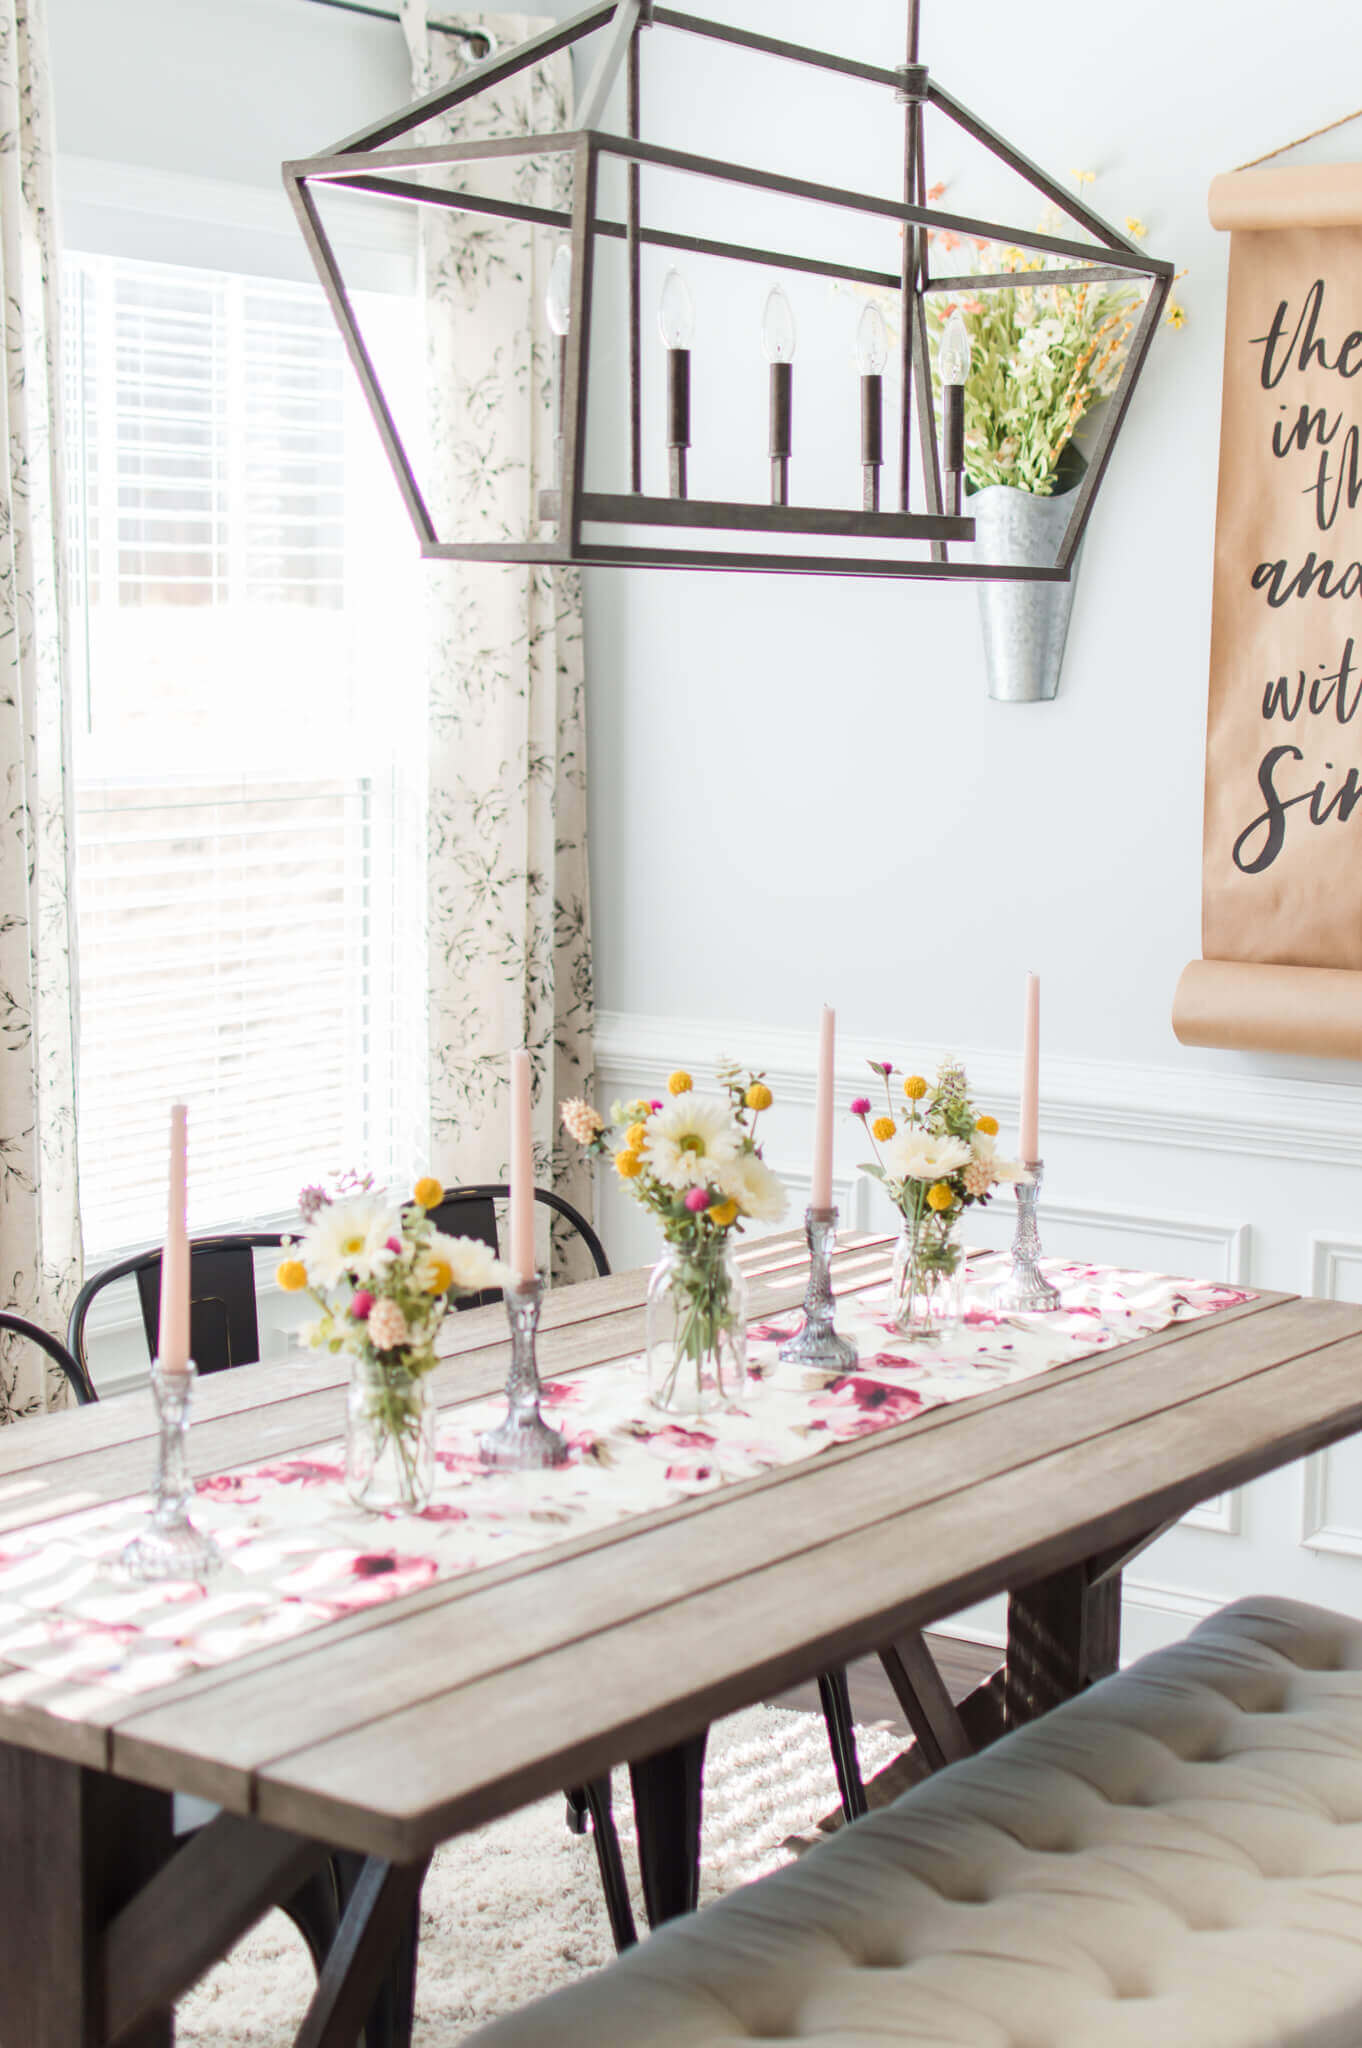 How-To Host The Perfect Galentine's Day With Your Girls // A Hosting Home Blog